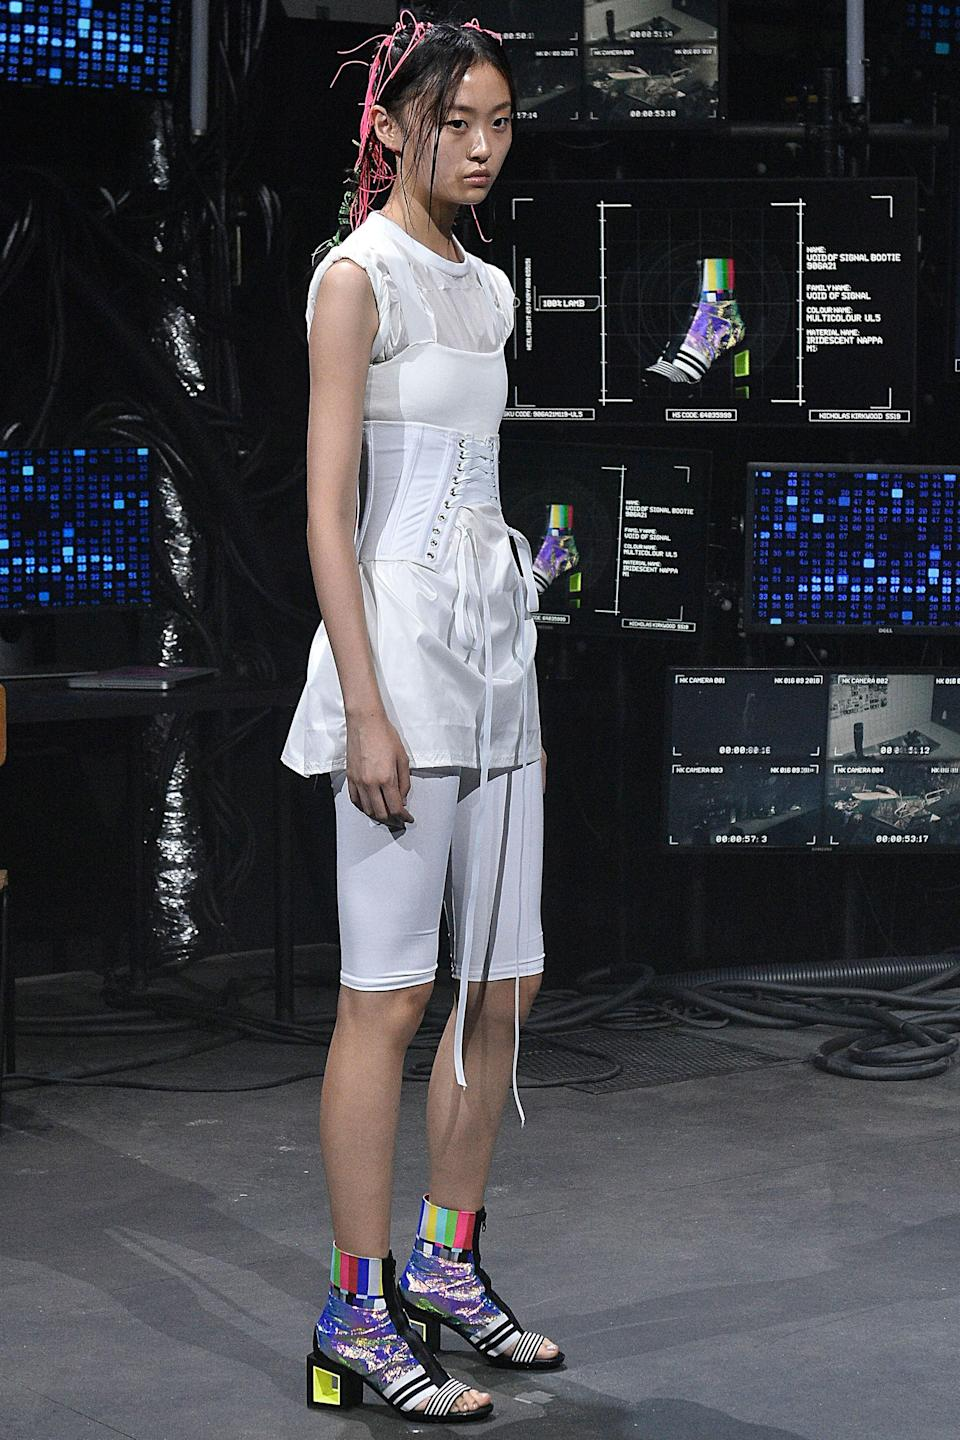 CyFi, a teen hacker who began her career at 10 years old, takes London Fashion Week.